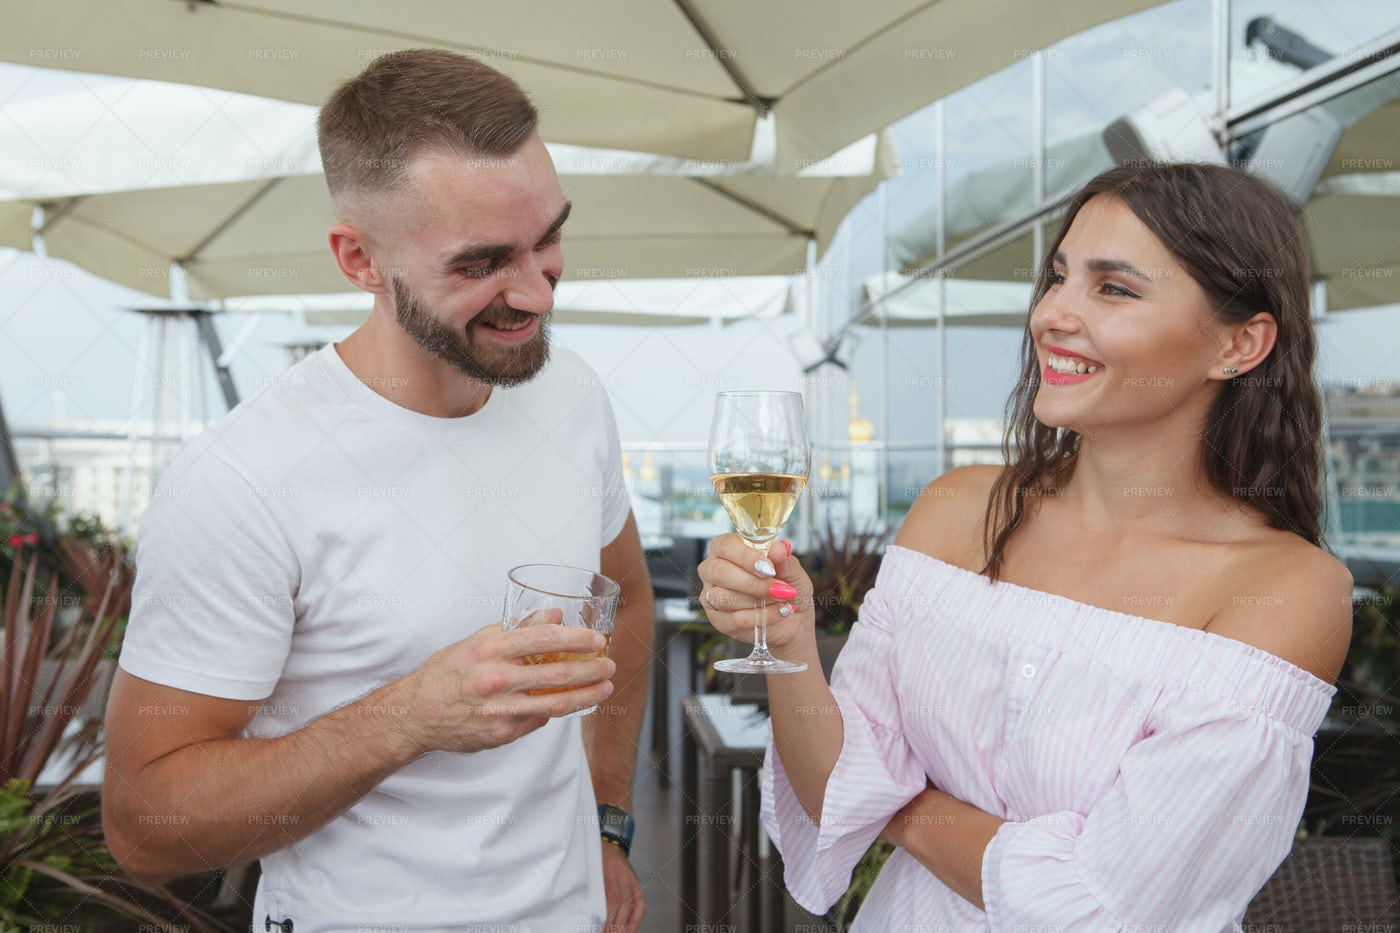 Couple Drinking Wine On A Rooftop: Stock Photos